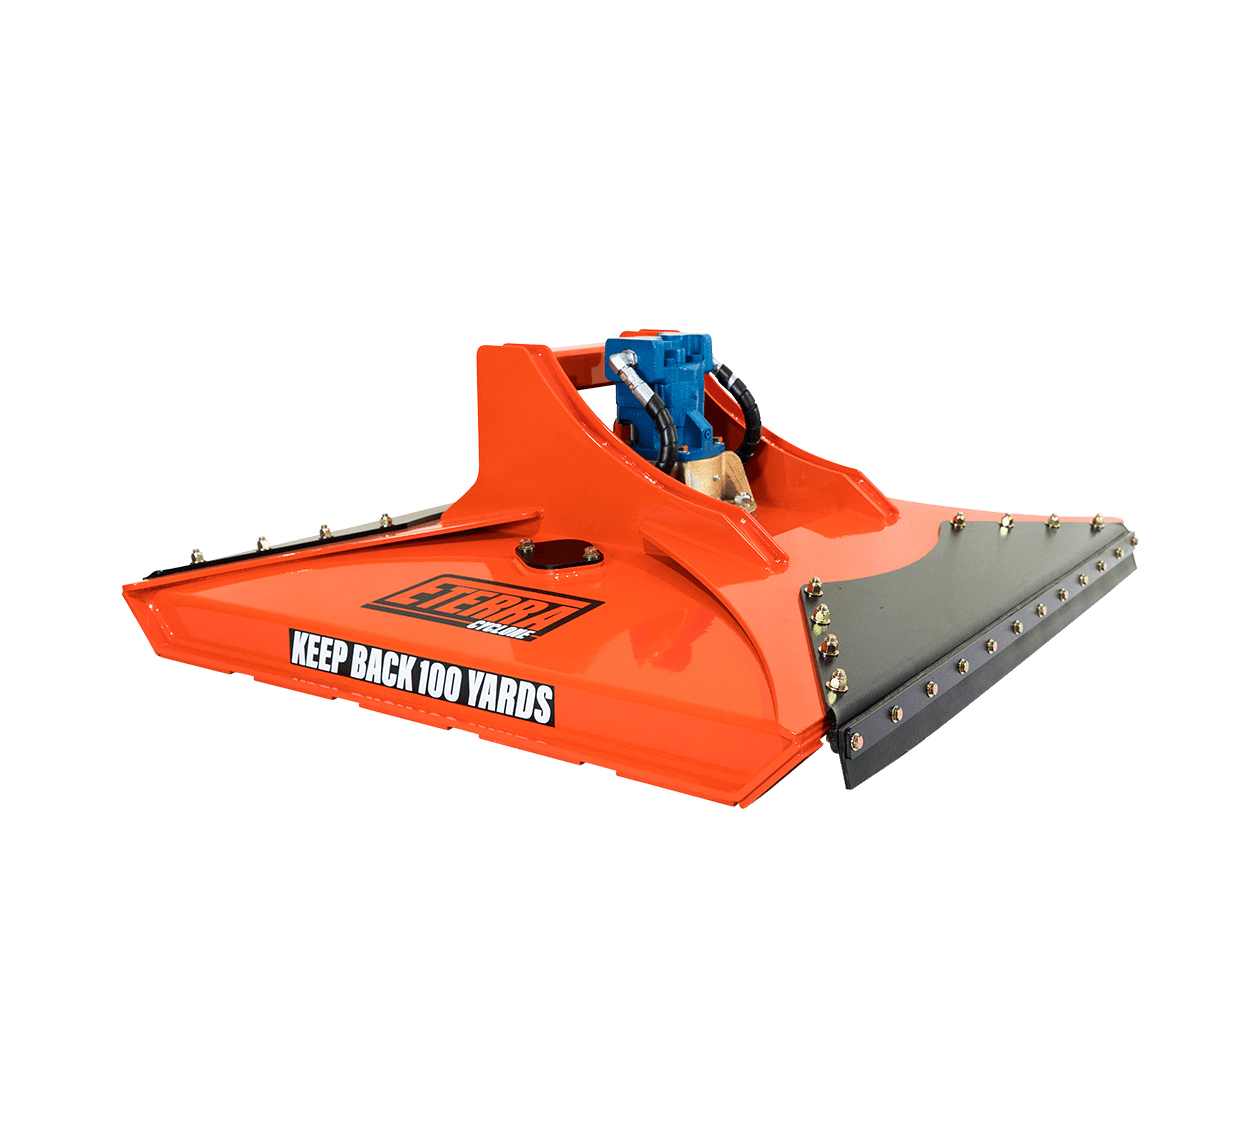 """Eterra Cyclone 48"""" Rotary Brush Mower Attachment for Skid Steers and Excavators White background"""